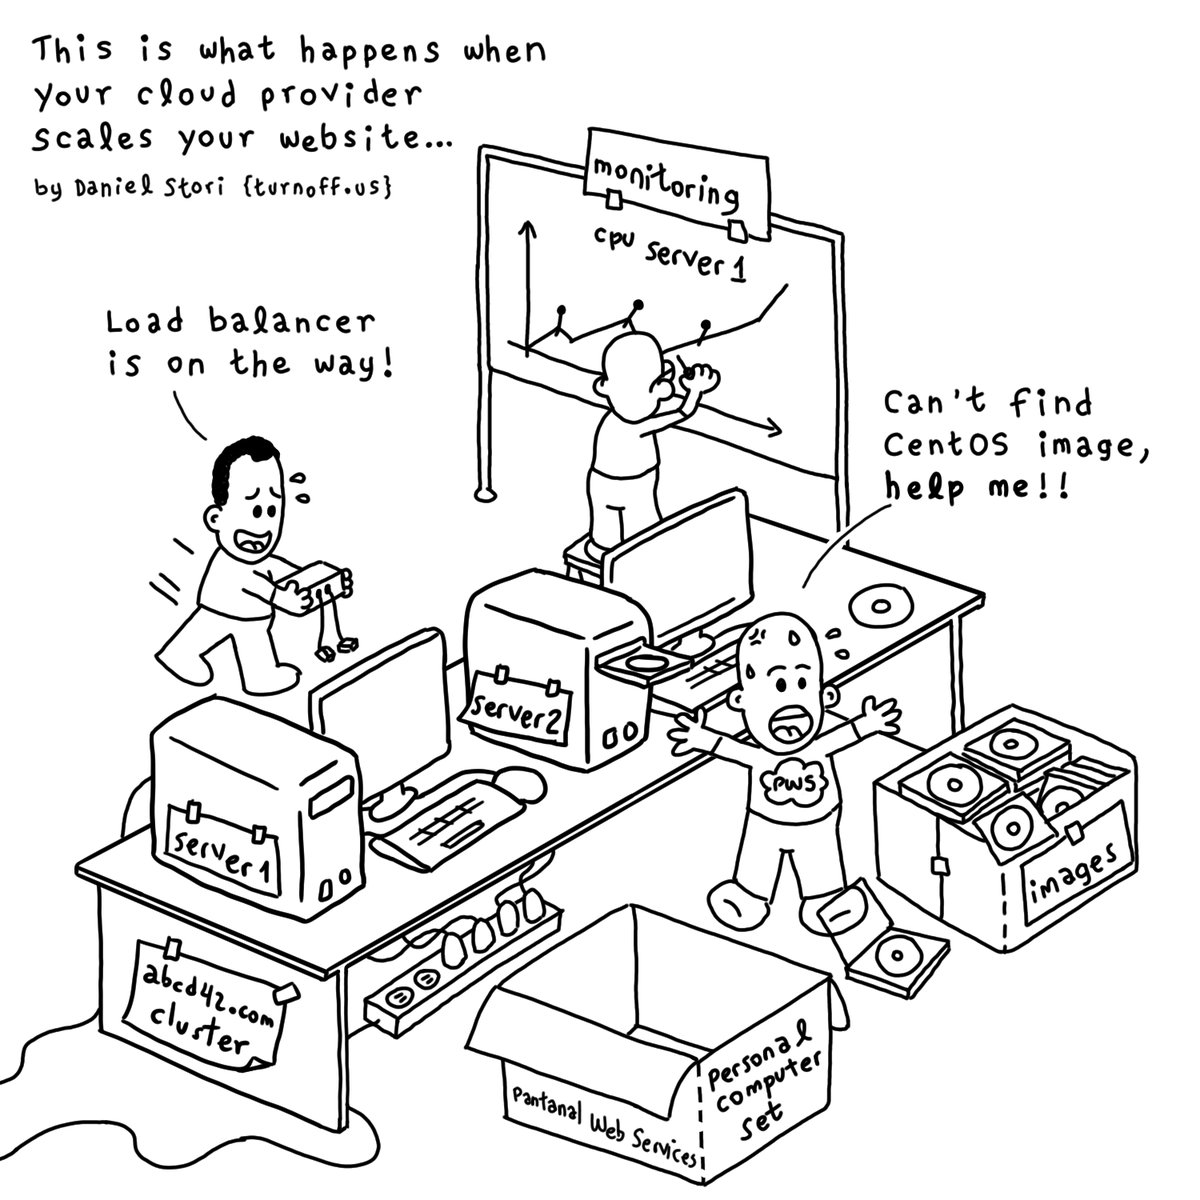 RT Cloud Autoscaling Revealed #comic #cloud #autoscaling https://t.co/SynSs18fwy  - embedded image